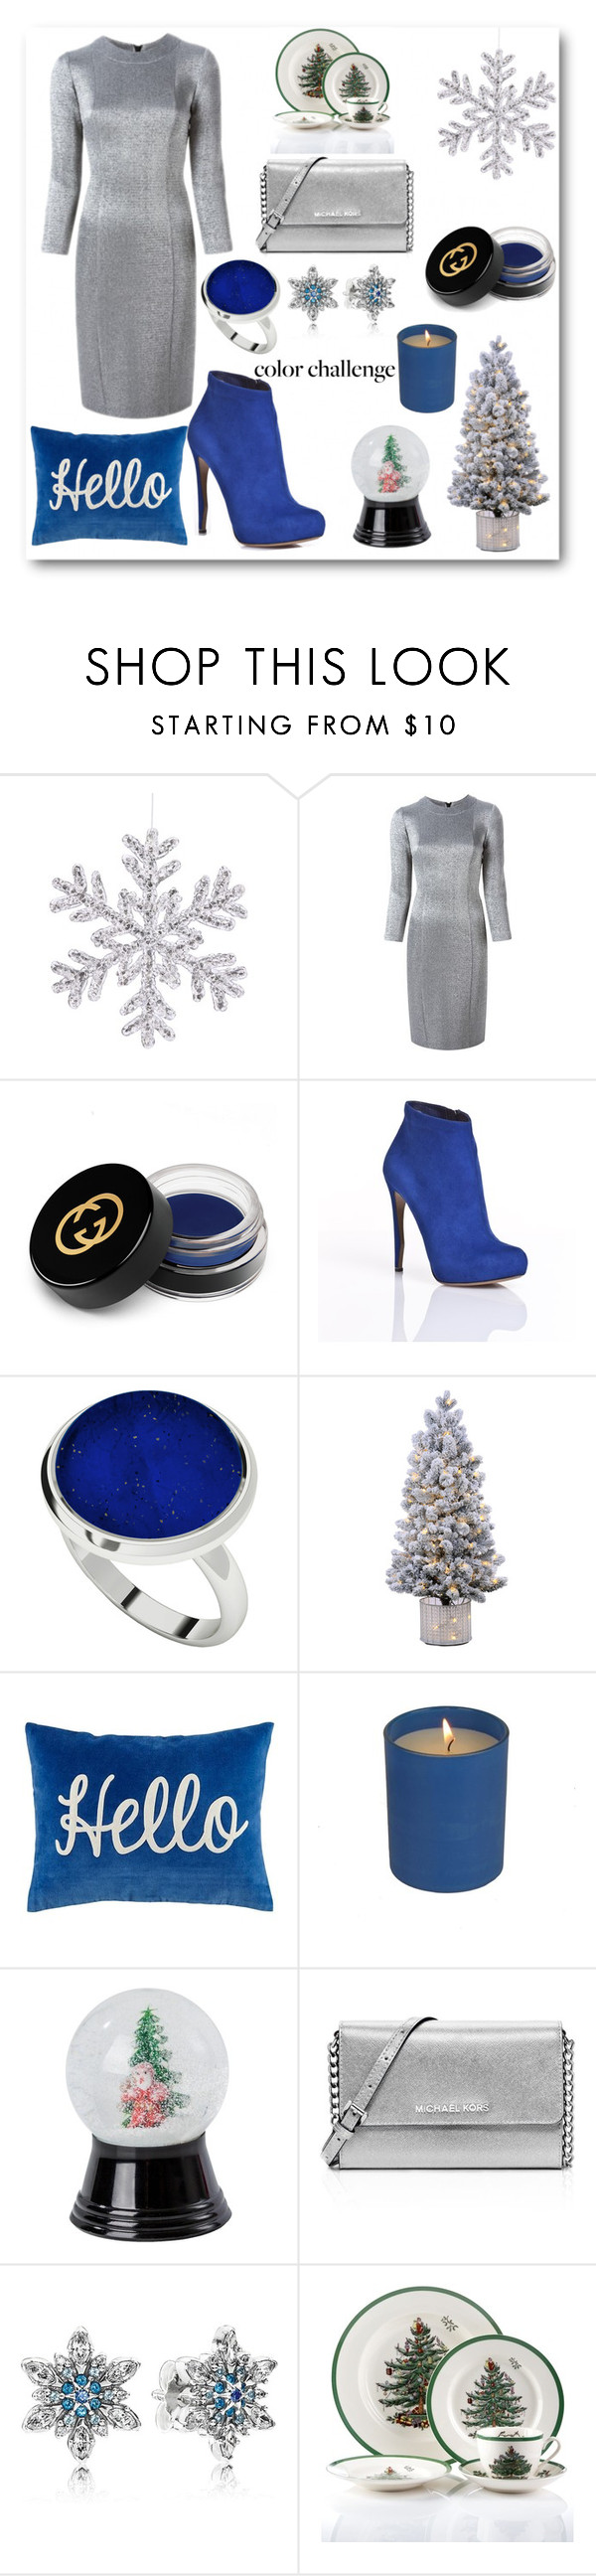 """""""Untitled #543"""" by katrina259 ❤ liked on Polyvore featuring Gianluca Capannolo, Gucci, Nicholas Kirkwood, StyleRocks, MICHAEL Michael Kors, Pandora, Spode, colorchallenge, holidaystyle and blueandsilver"""